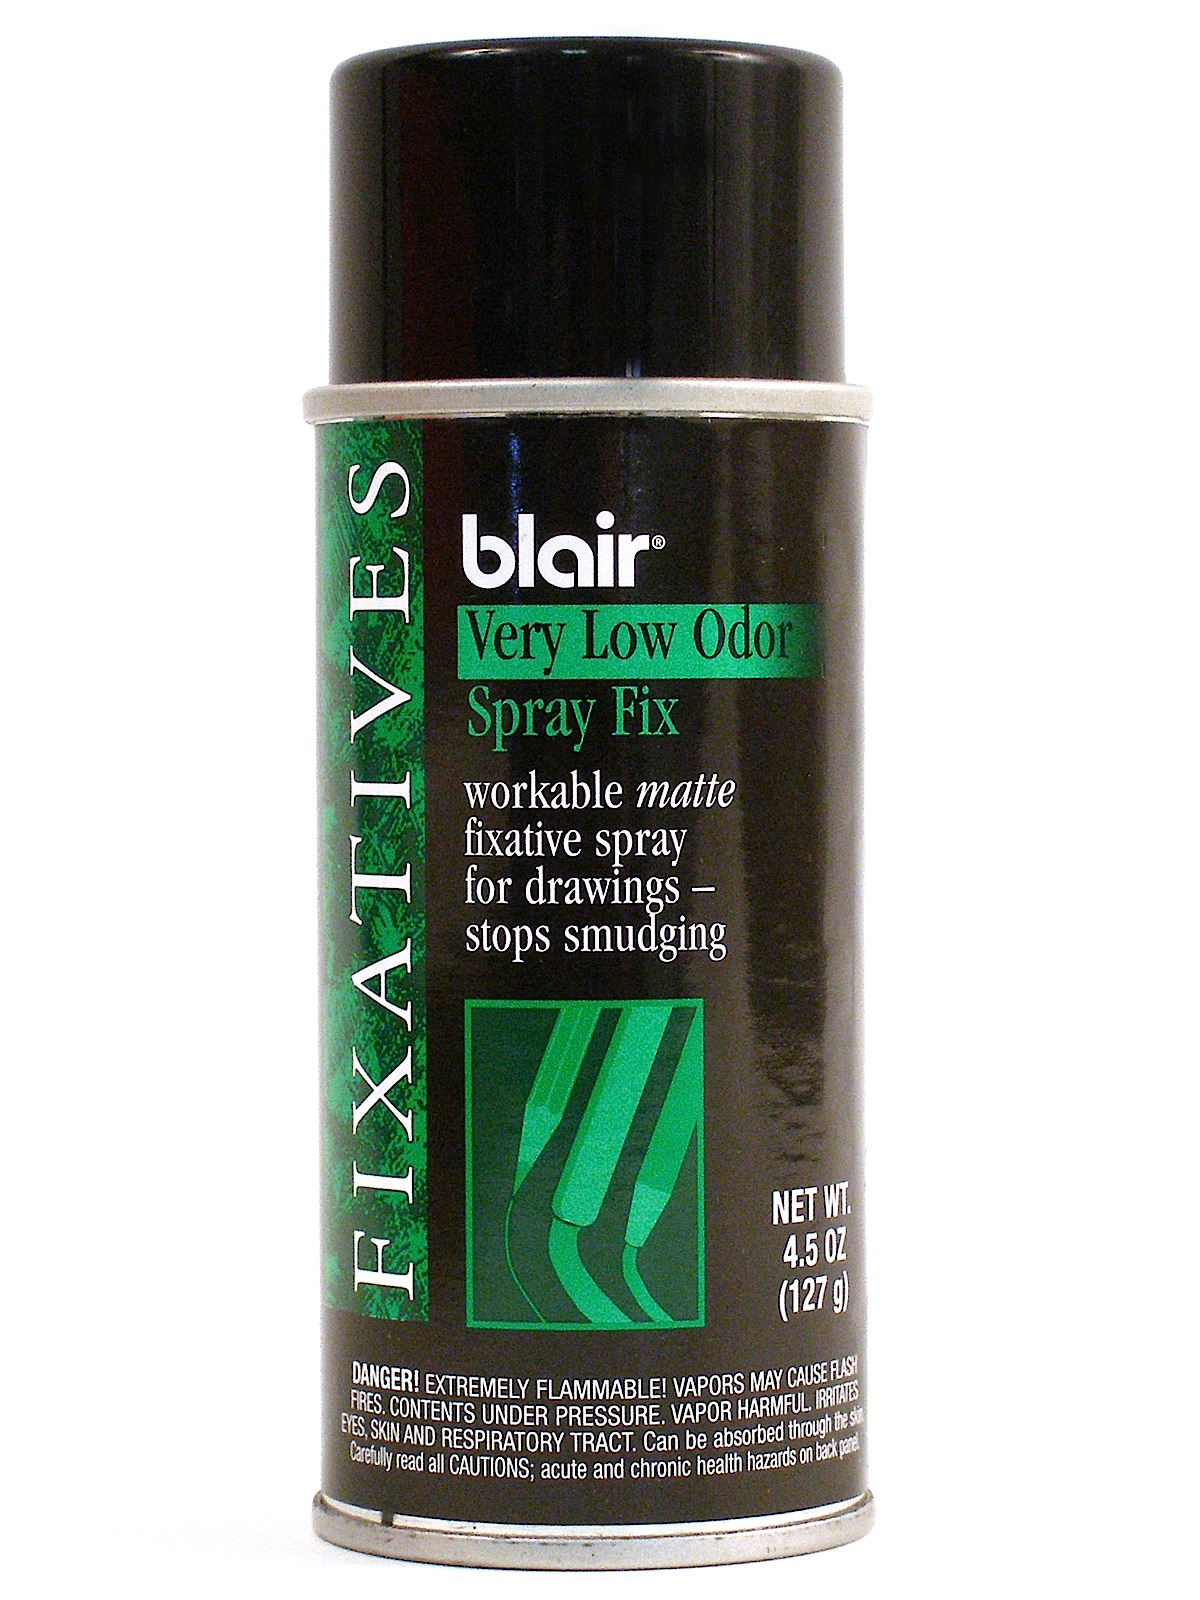 Blair Very Low Odor Spray Fix Misterart Com